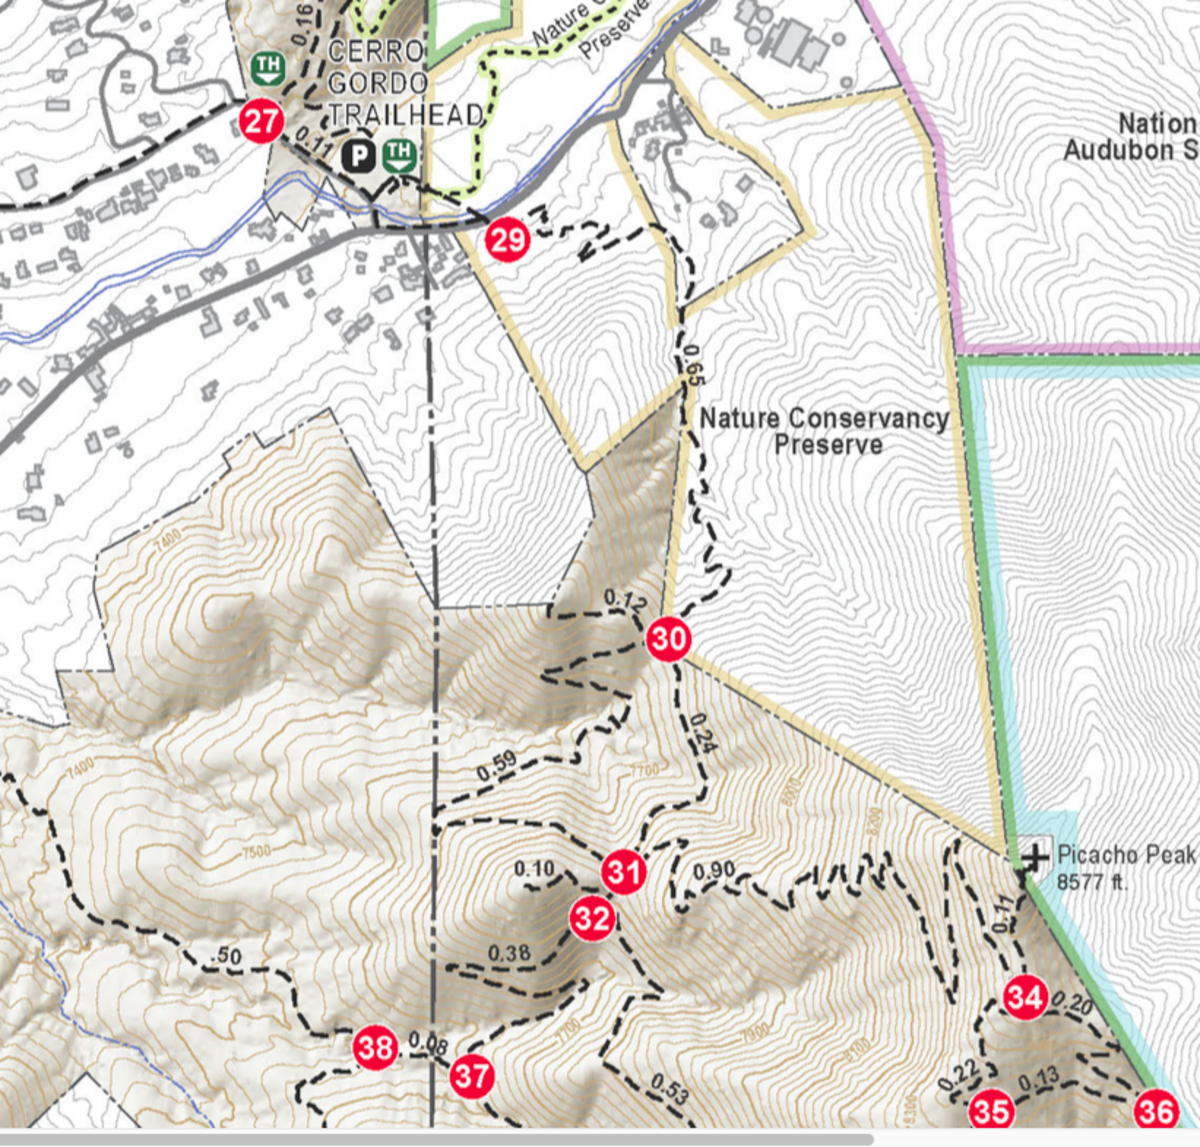 Map of the relevant Dale Ball trails